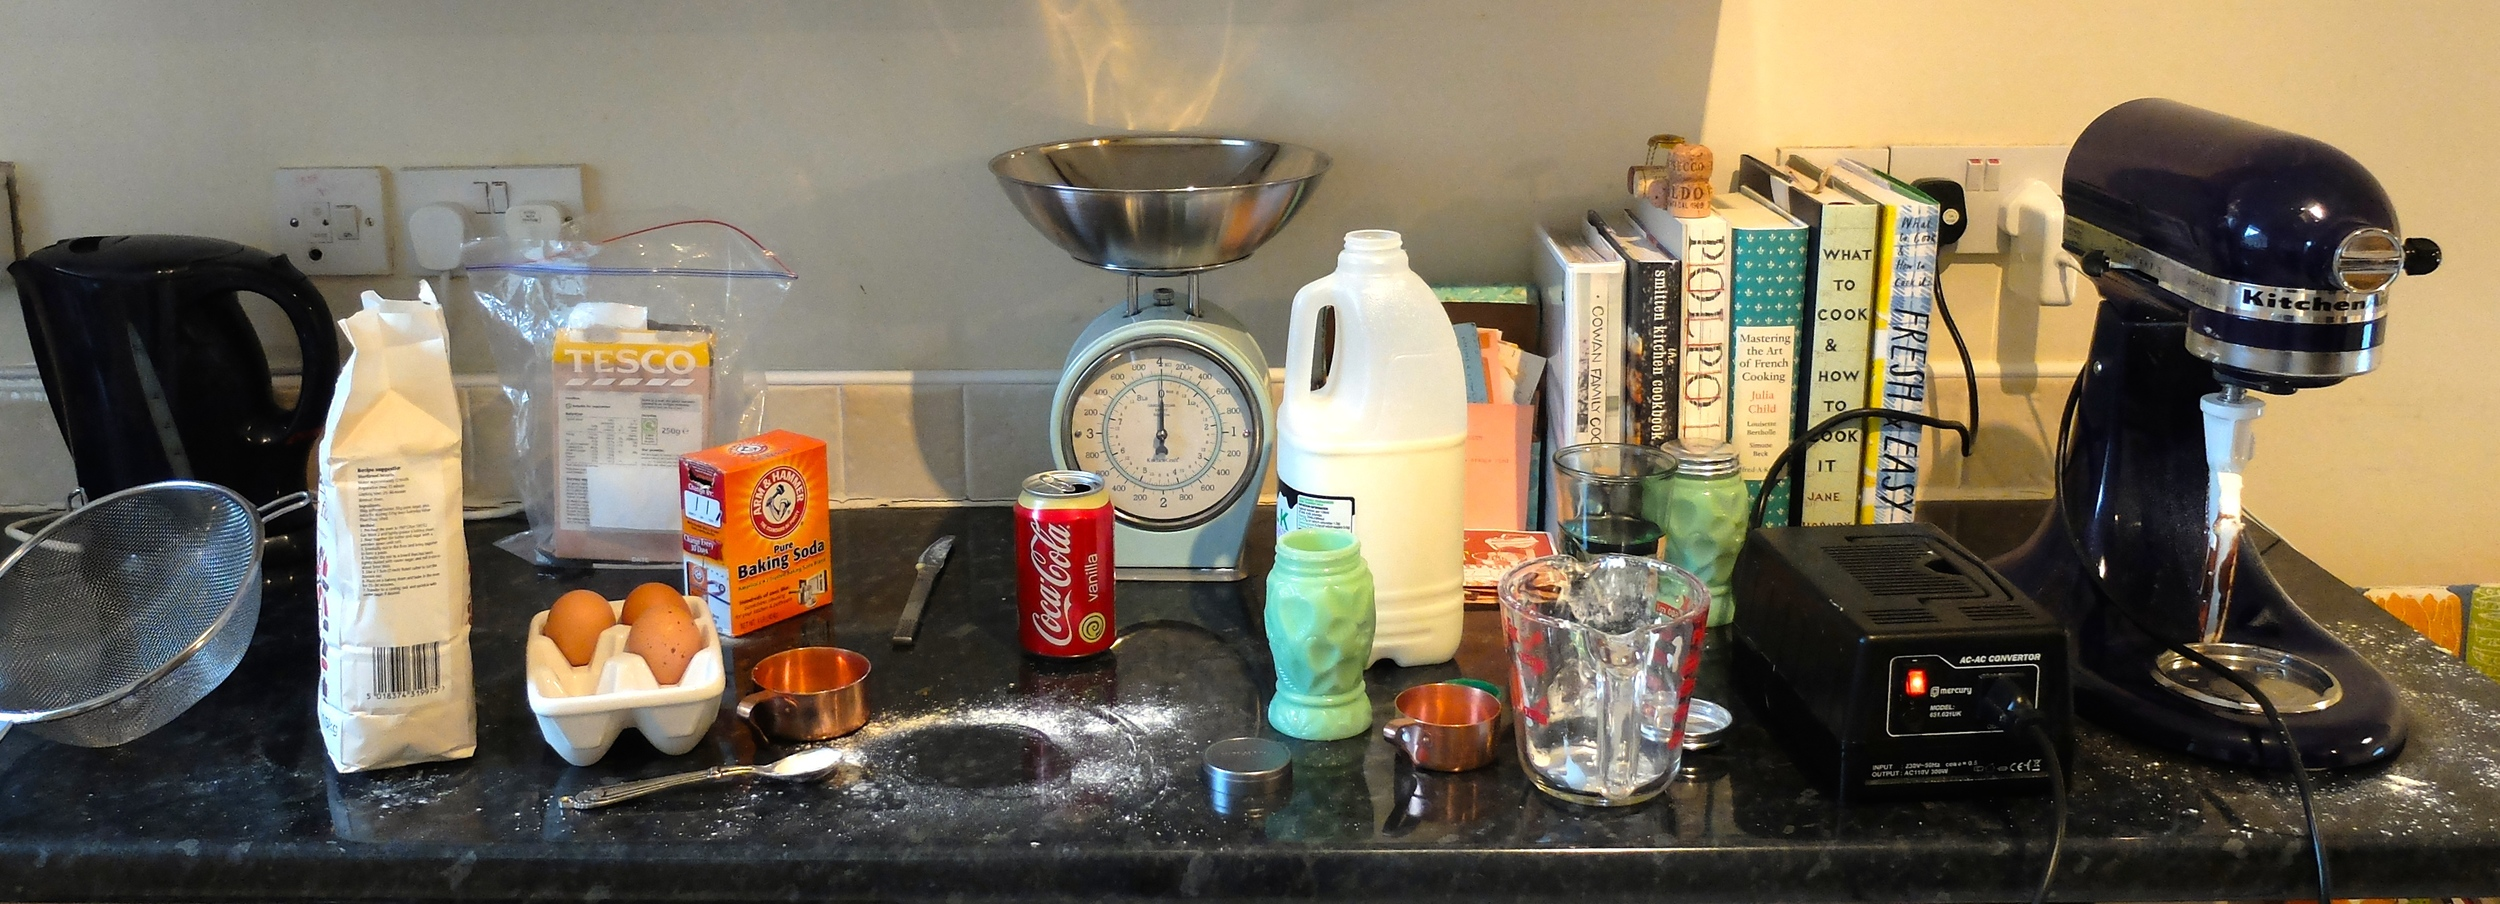 This is the giant mess i sometimes make when I cook. my mom, the neatest cook in the world, would be mortified.